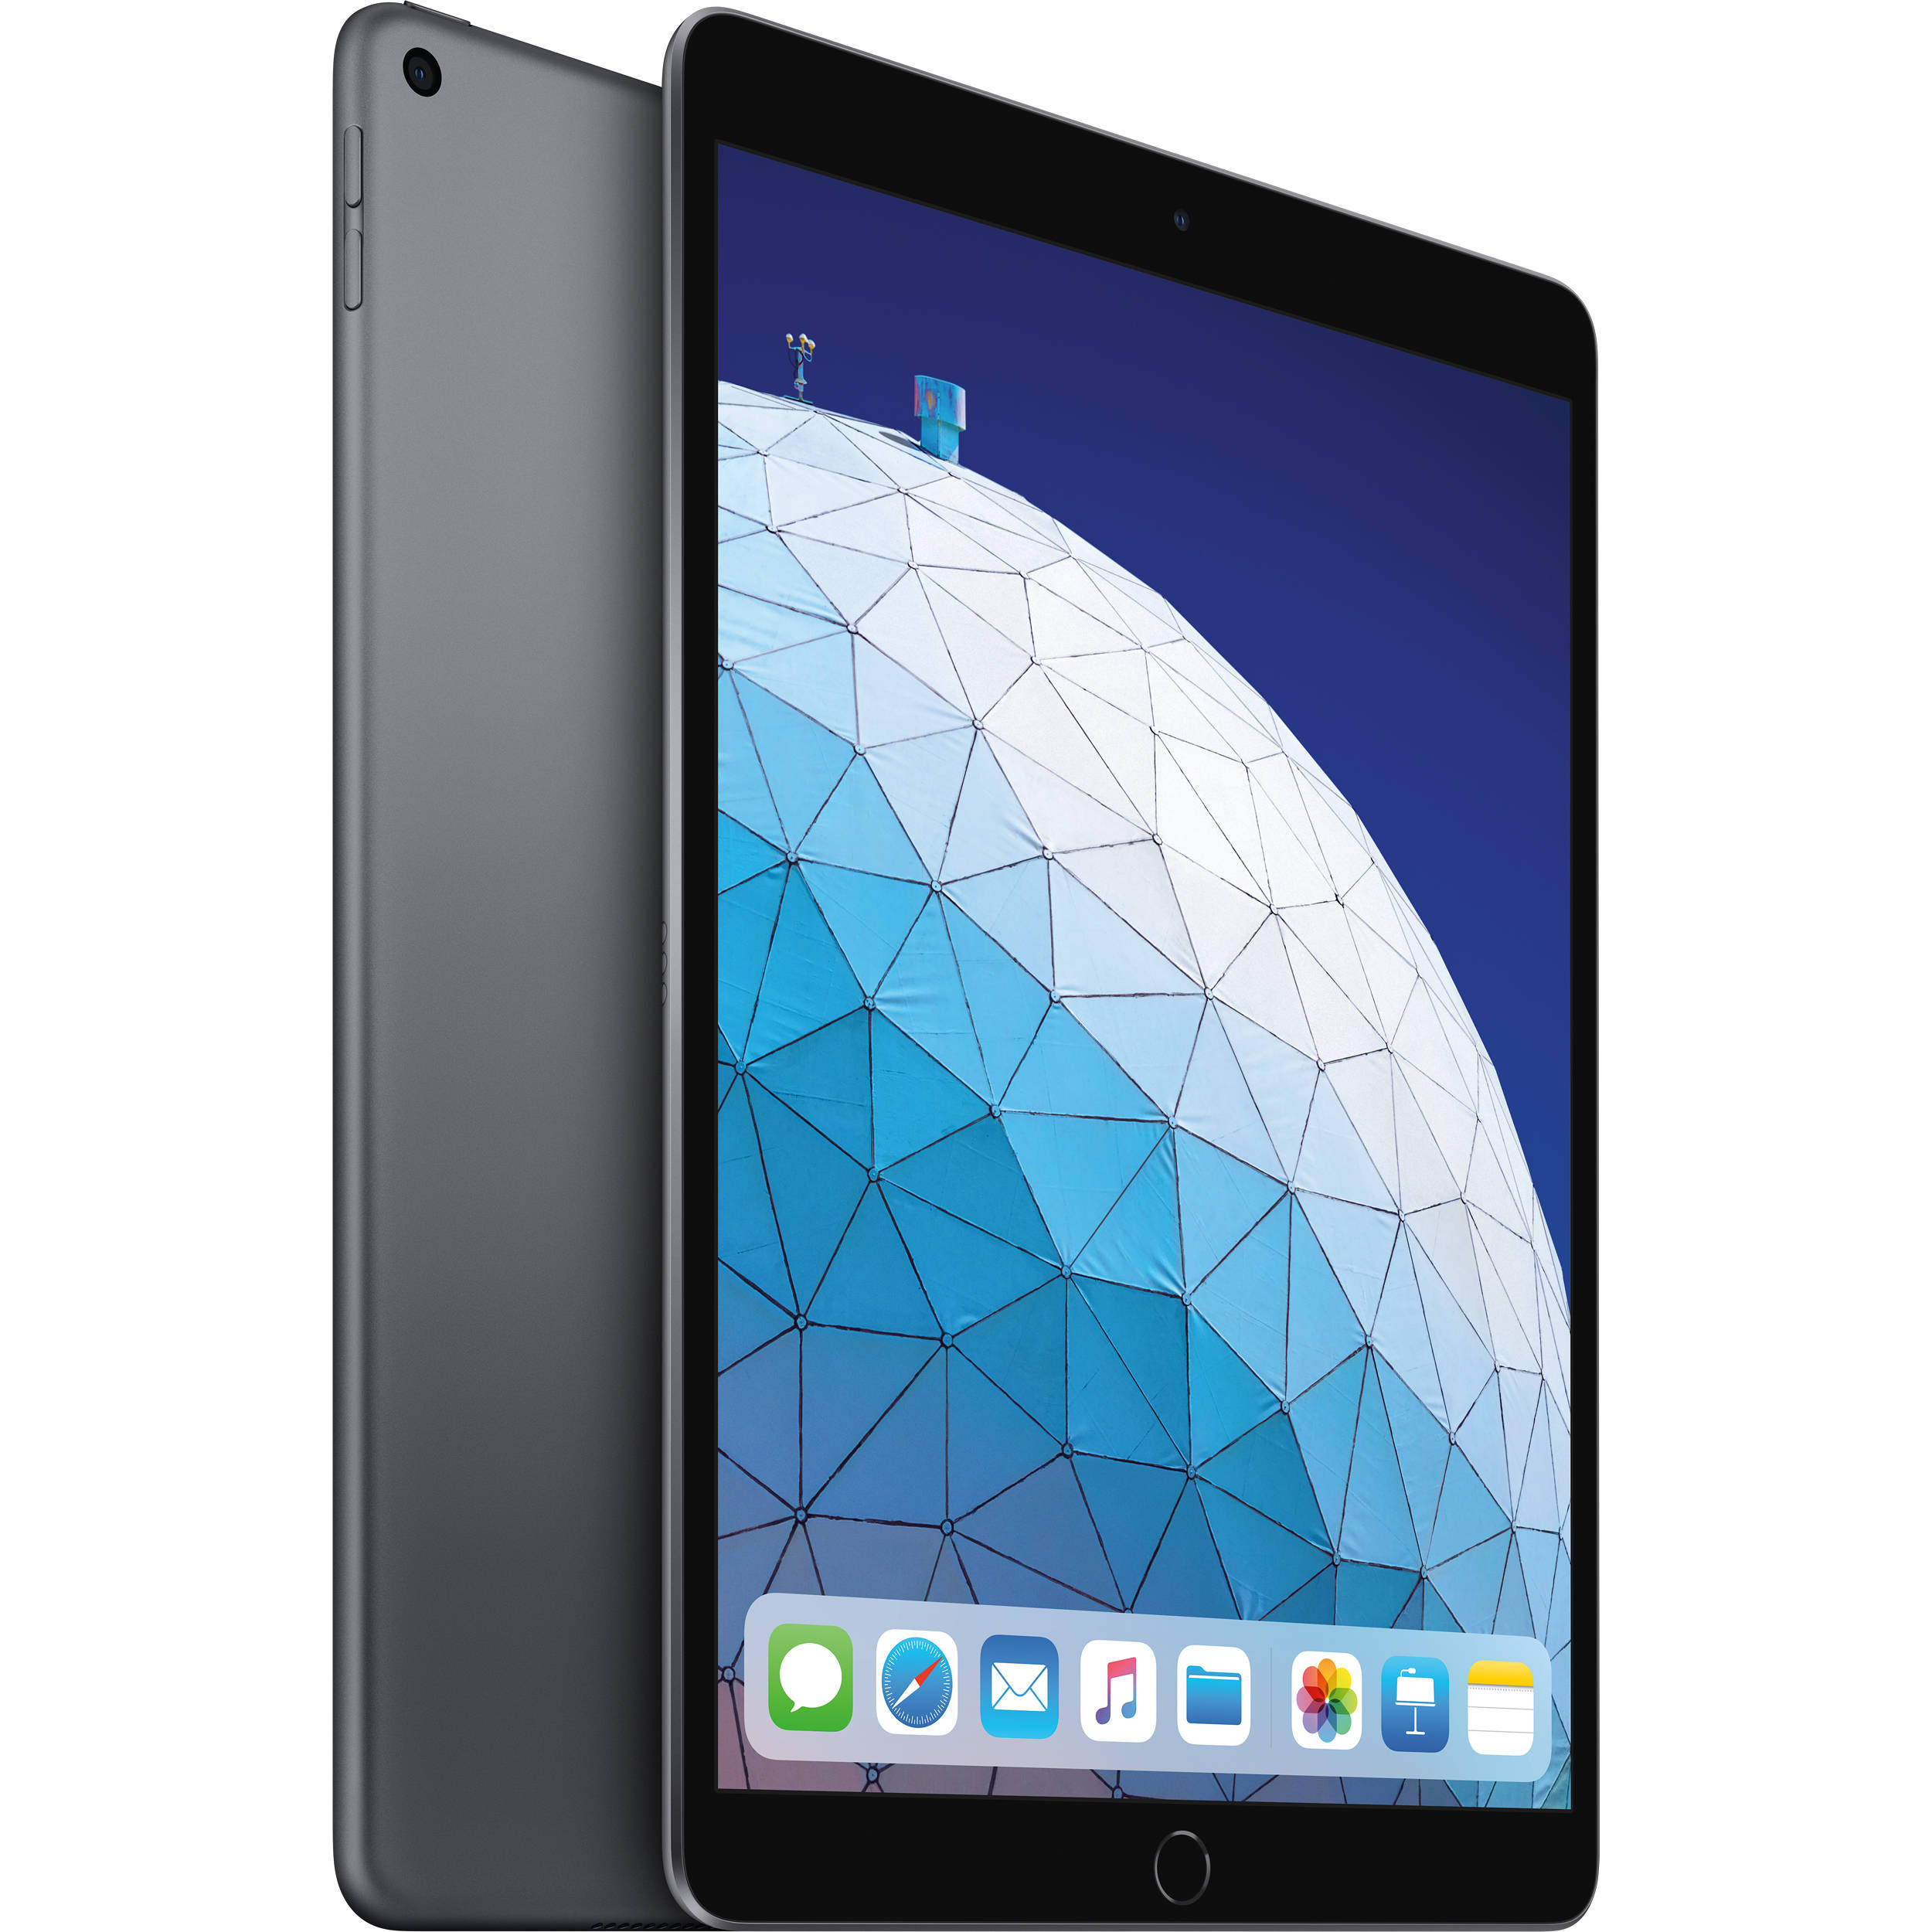 """Image of Apple iPad Air (2019) 10.5"""" MUUQ2 256GB WiFi with Tempered Glass Screen Protector and Folding Case (Black) - Space Gray (with 1 year official Apple Warranty)"""